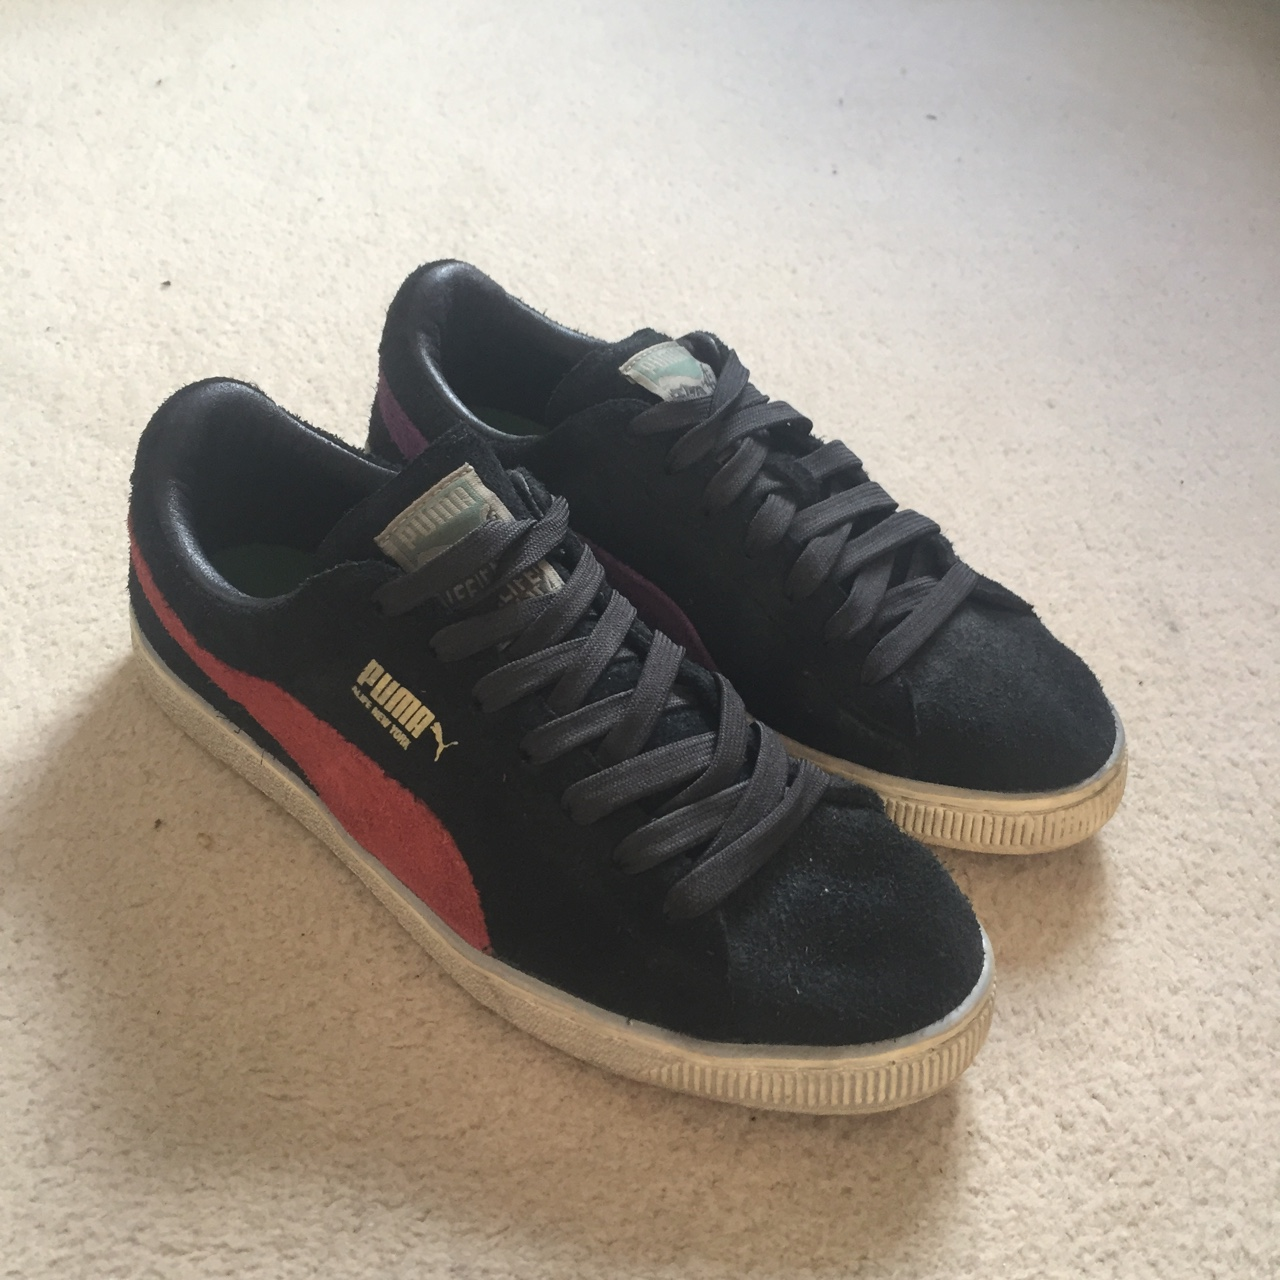 brand new 0c054 462a5 Puma x ALIFE Clyde's suede Worn three times..... - Depop